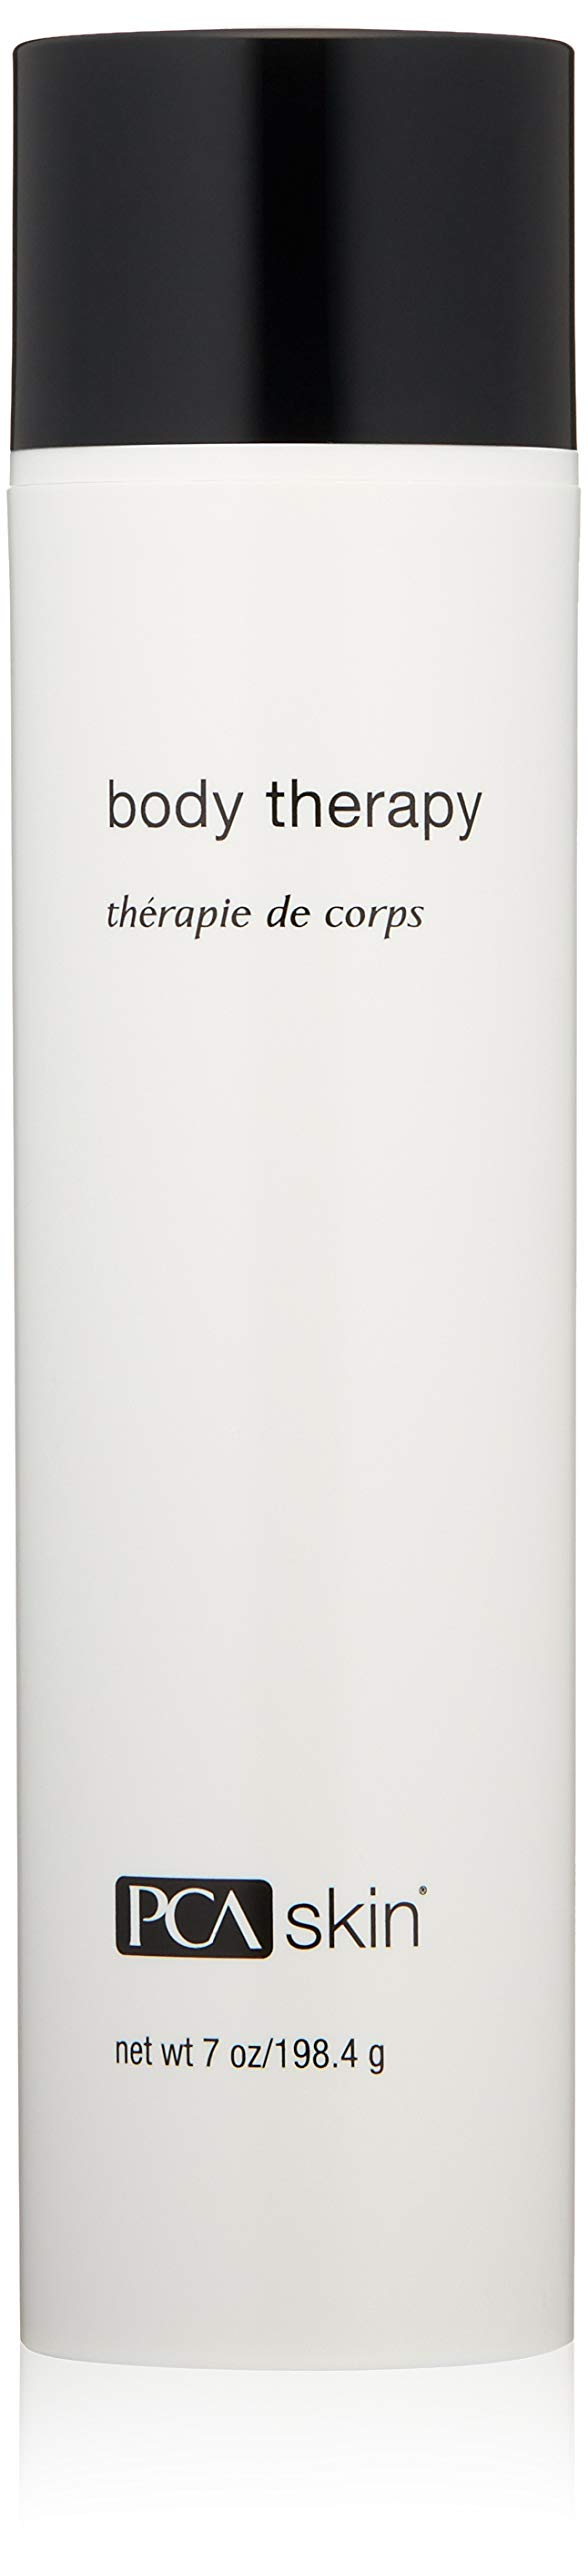 PCA SKIN Body Therapy Moisturizer, 7 oz.